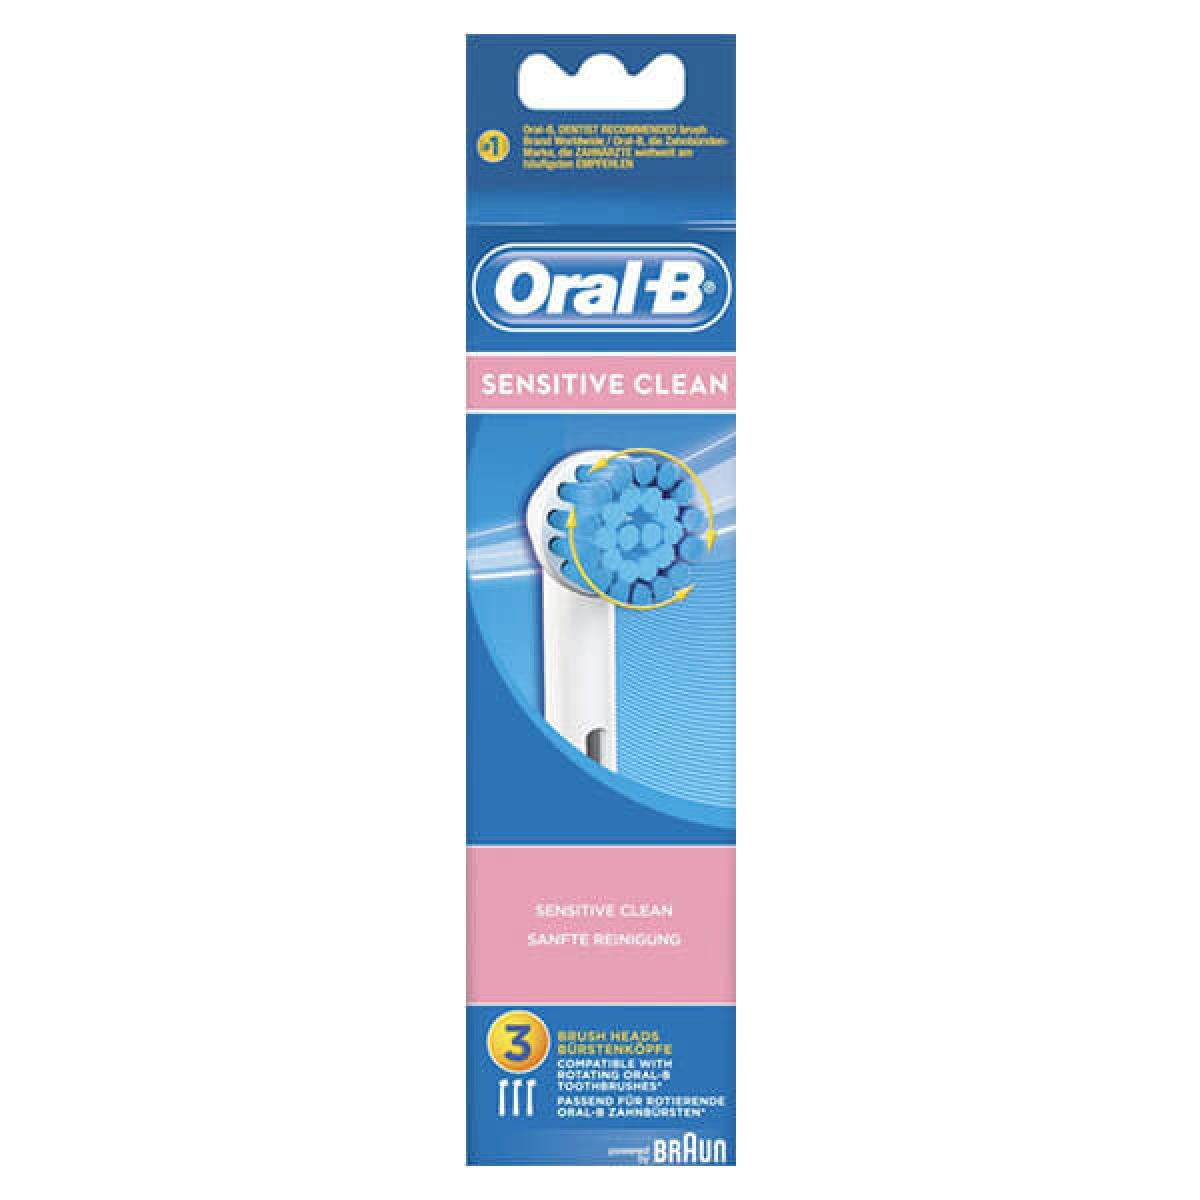 oral b sensisitive clean 3 brossettes de rechange. Black Bedroom Furniture Sets. Home Design Ideas